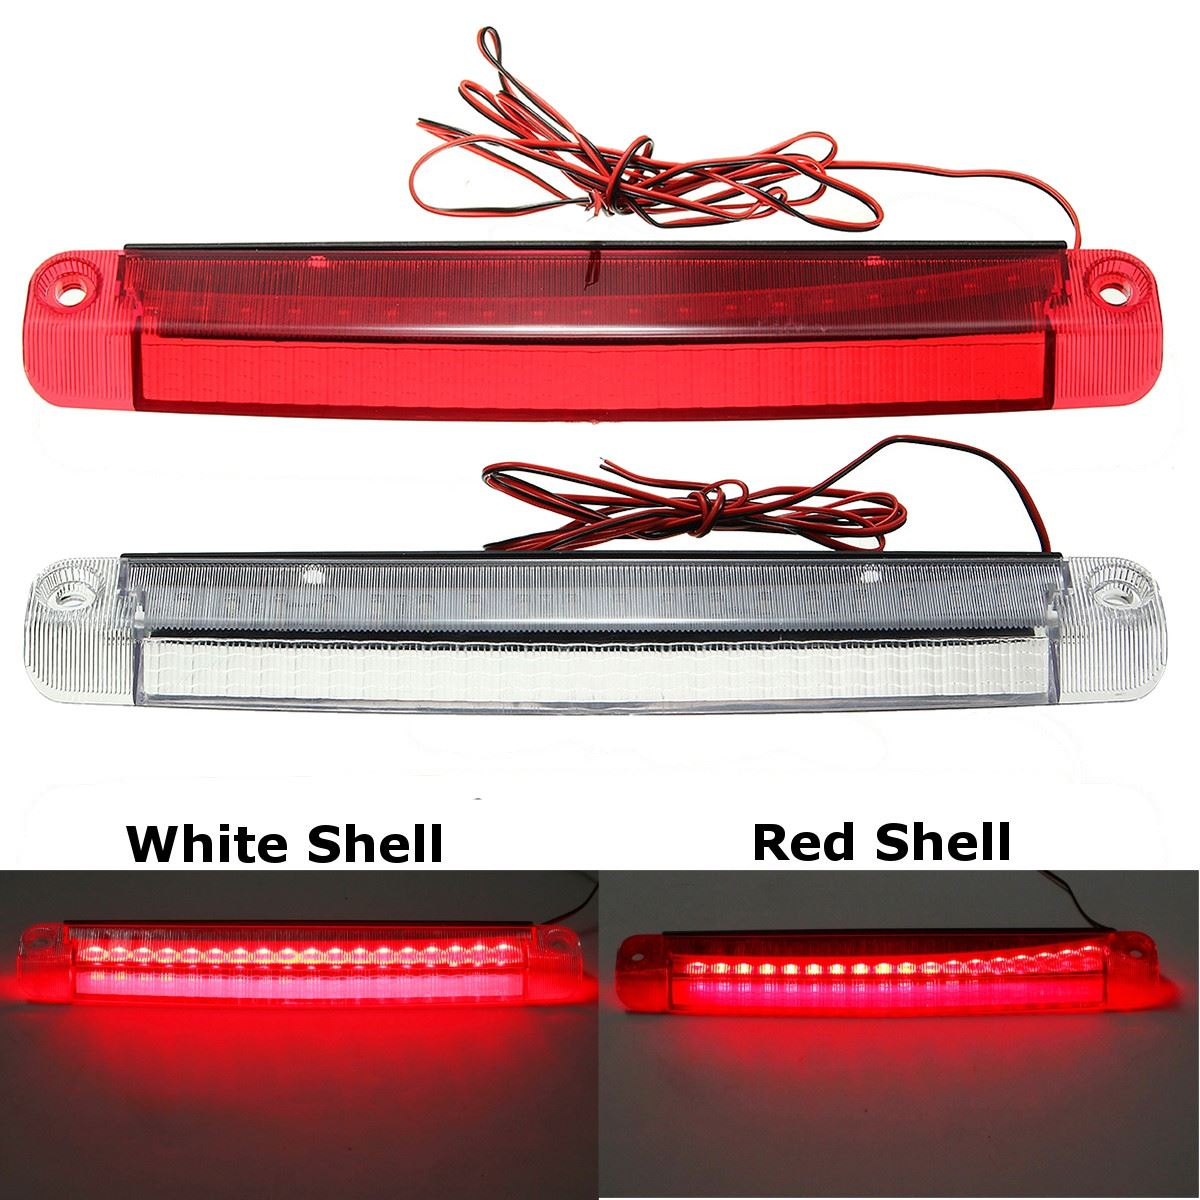 Unverisal 12V 5W Car 18 LED Car Reversing Lights Rear Tail Third Brake Stop Light High Mount Lamp Red 1210 car styling tail lights for toyota highlander 2015 led tail lamp rear trunk lamp cover drl signal brake reverse